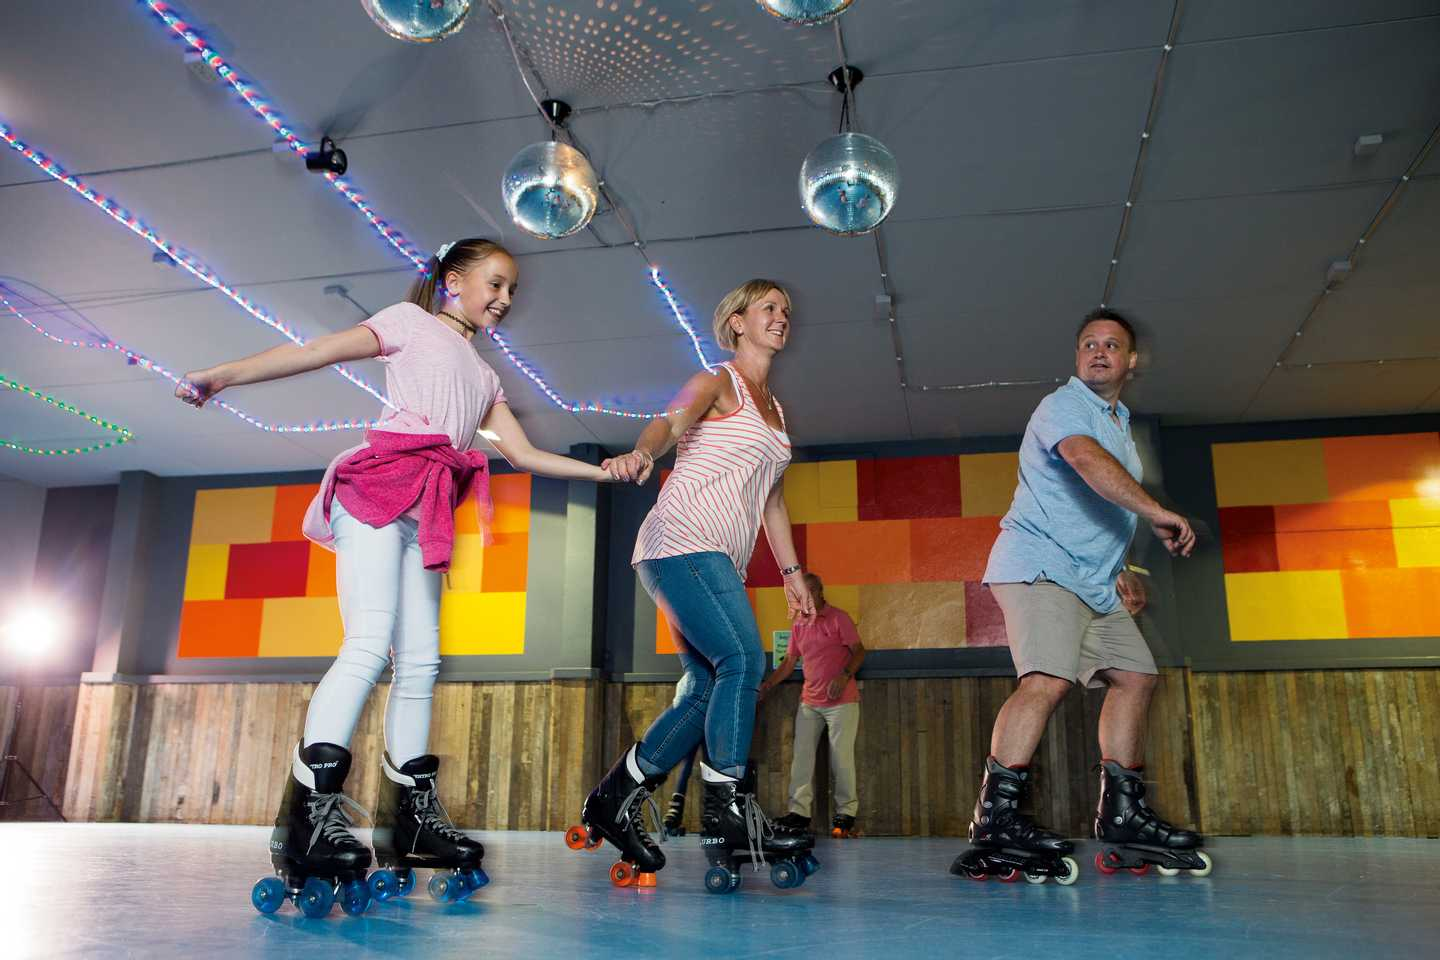 Rollerdisco in full swing